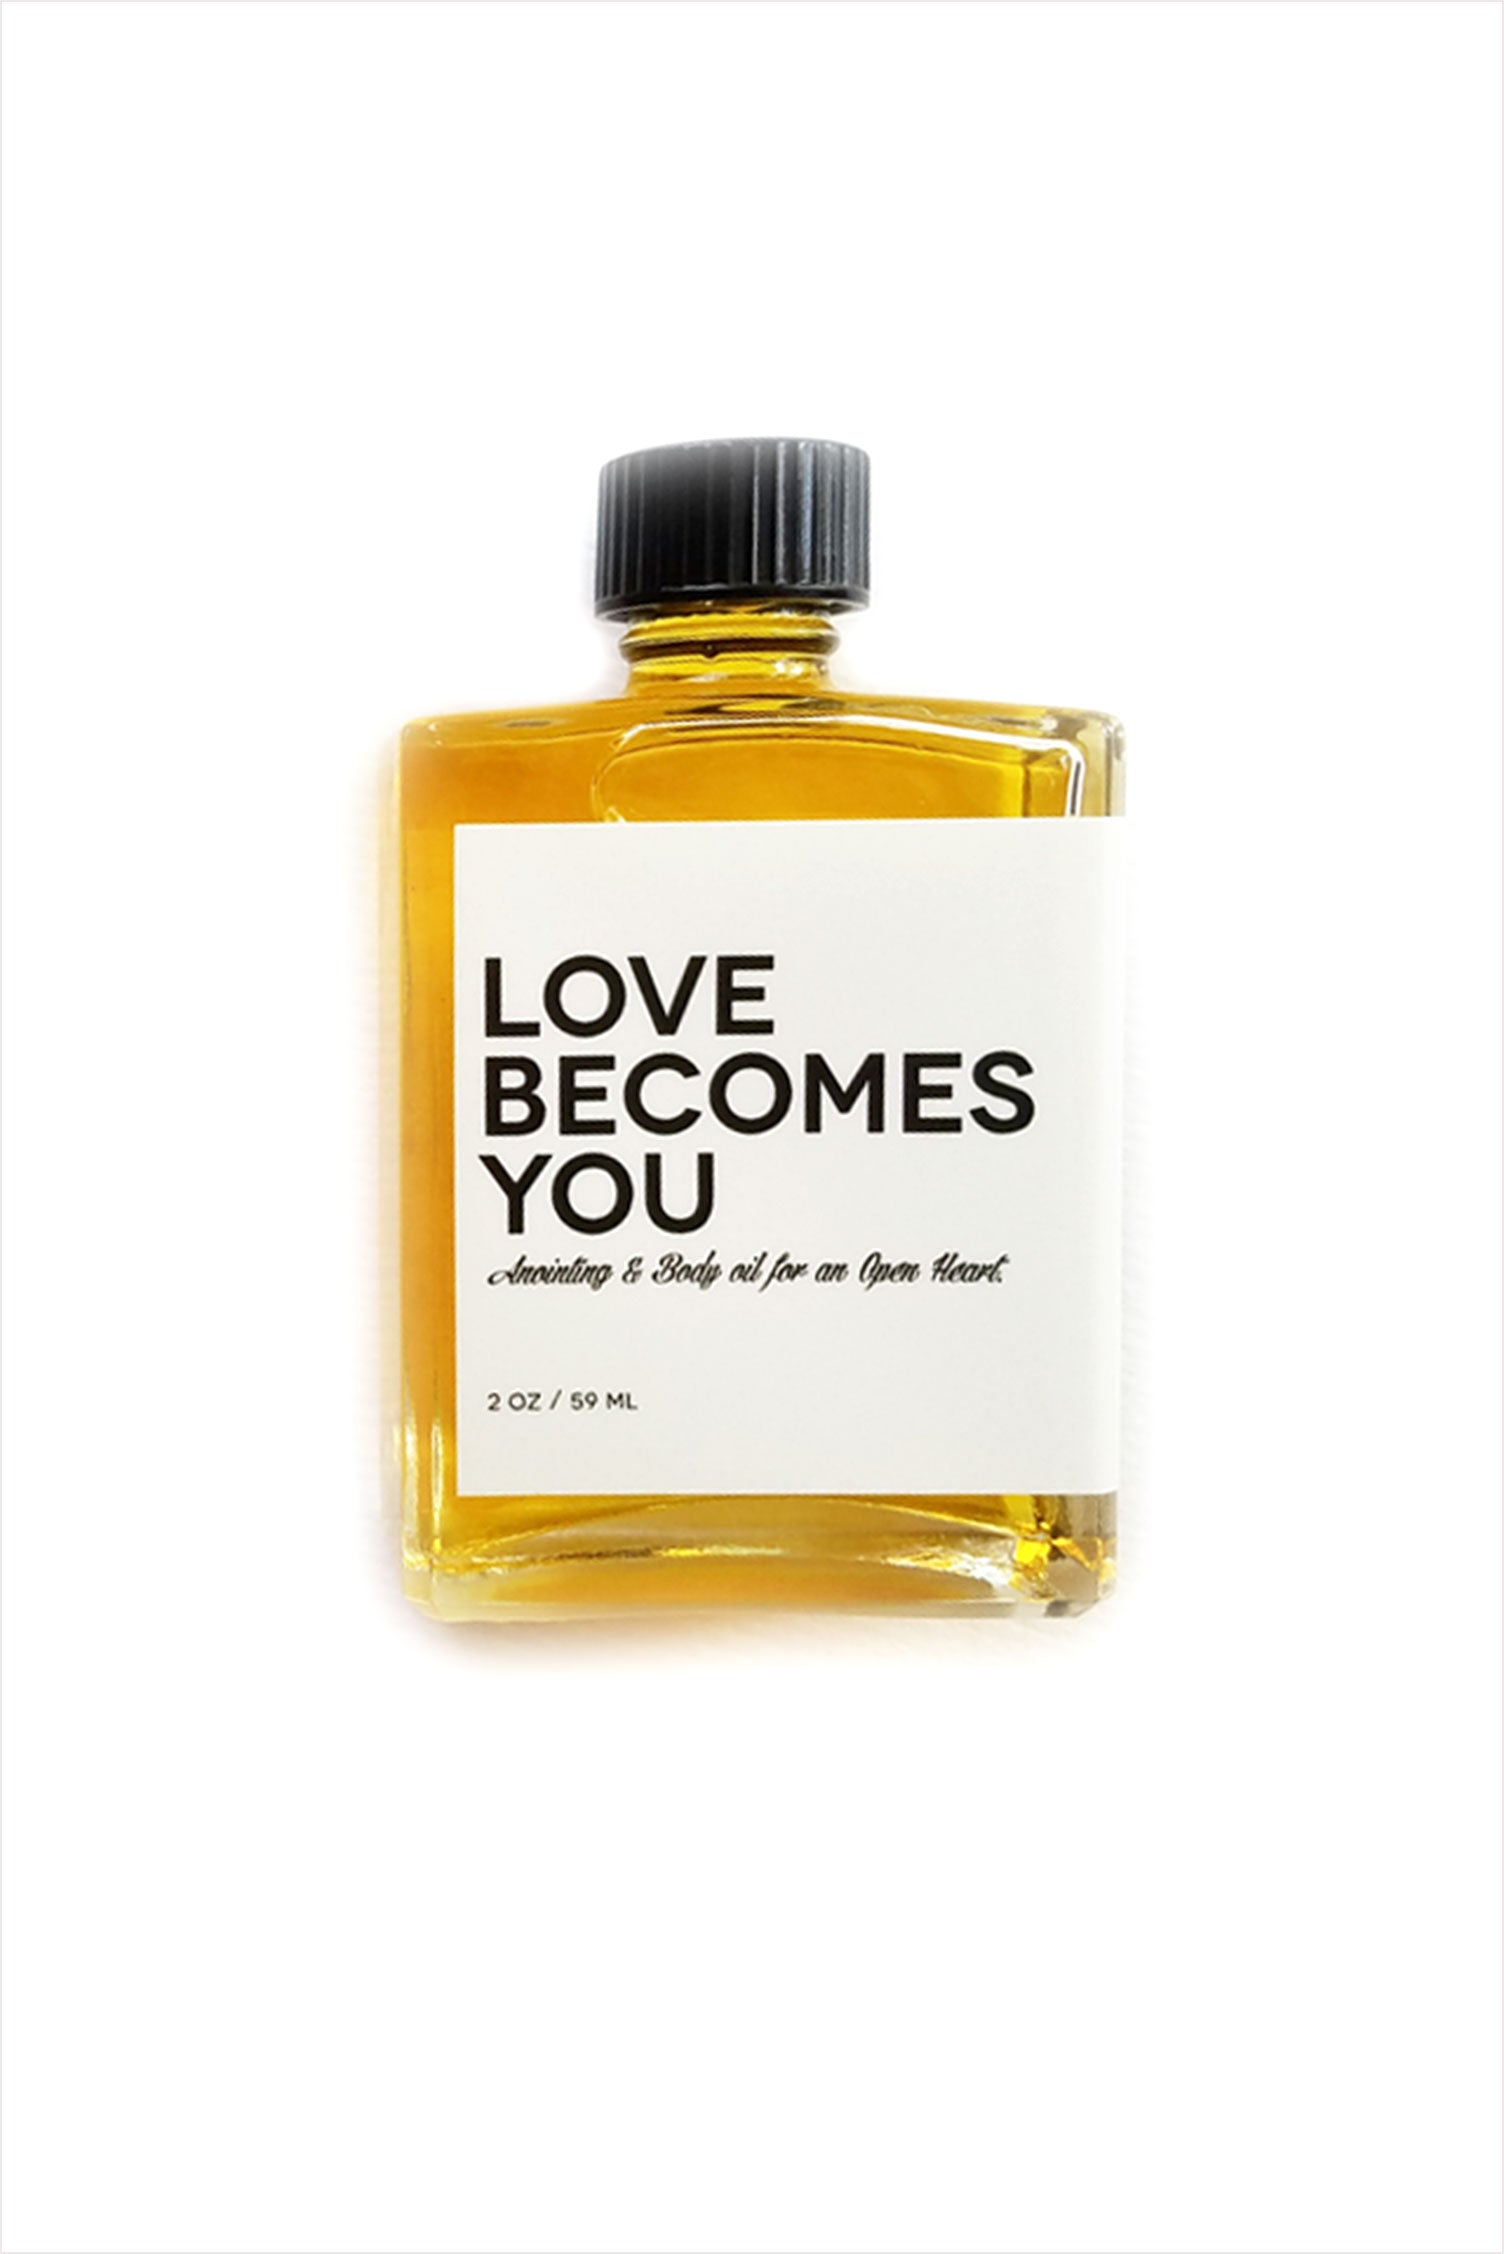 Love Becomes You - Body Oil